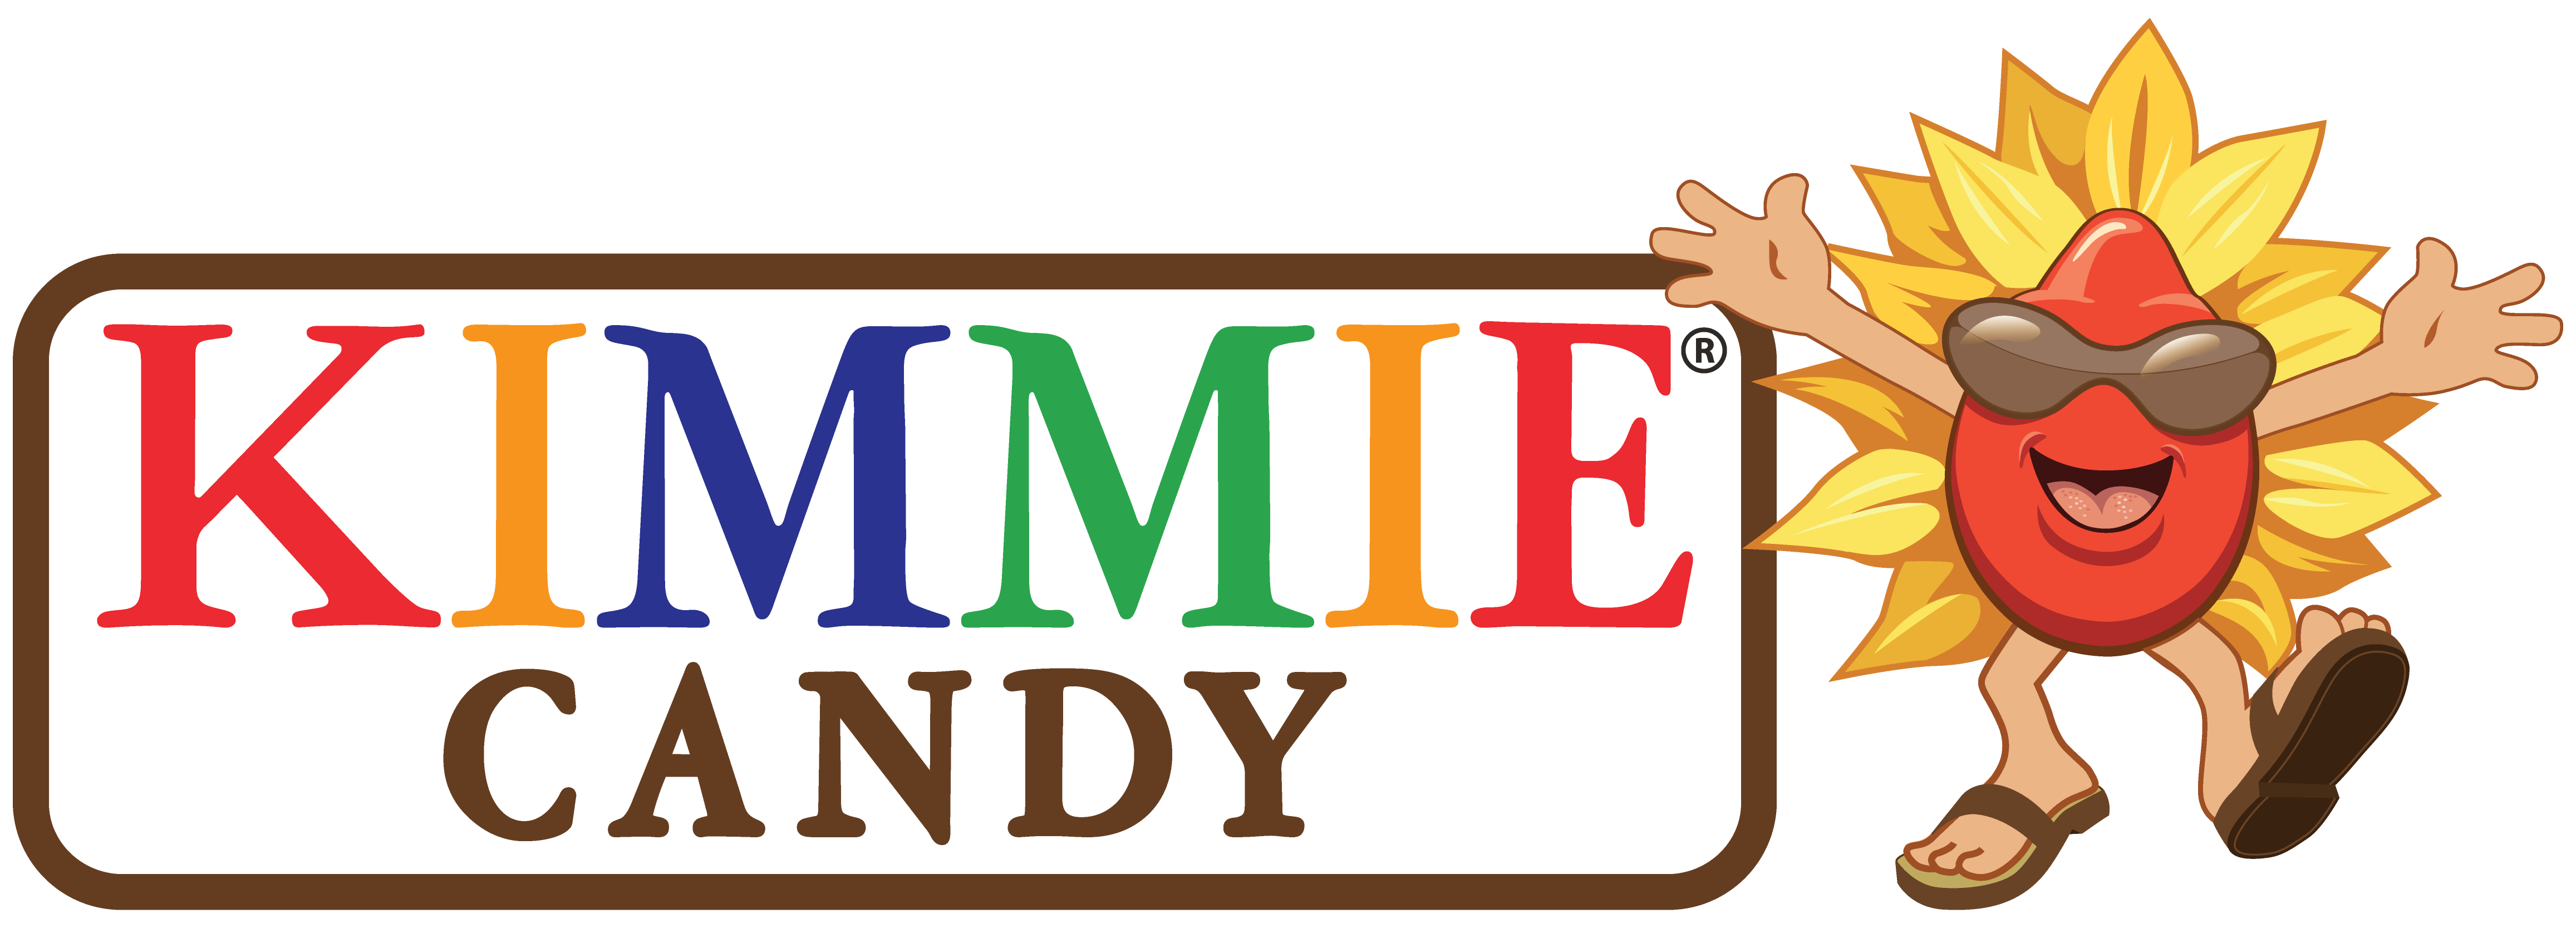 Kimmie_Candy_Logo.png